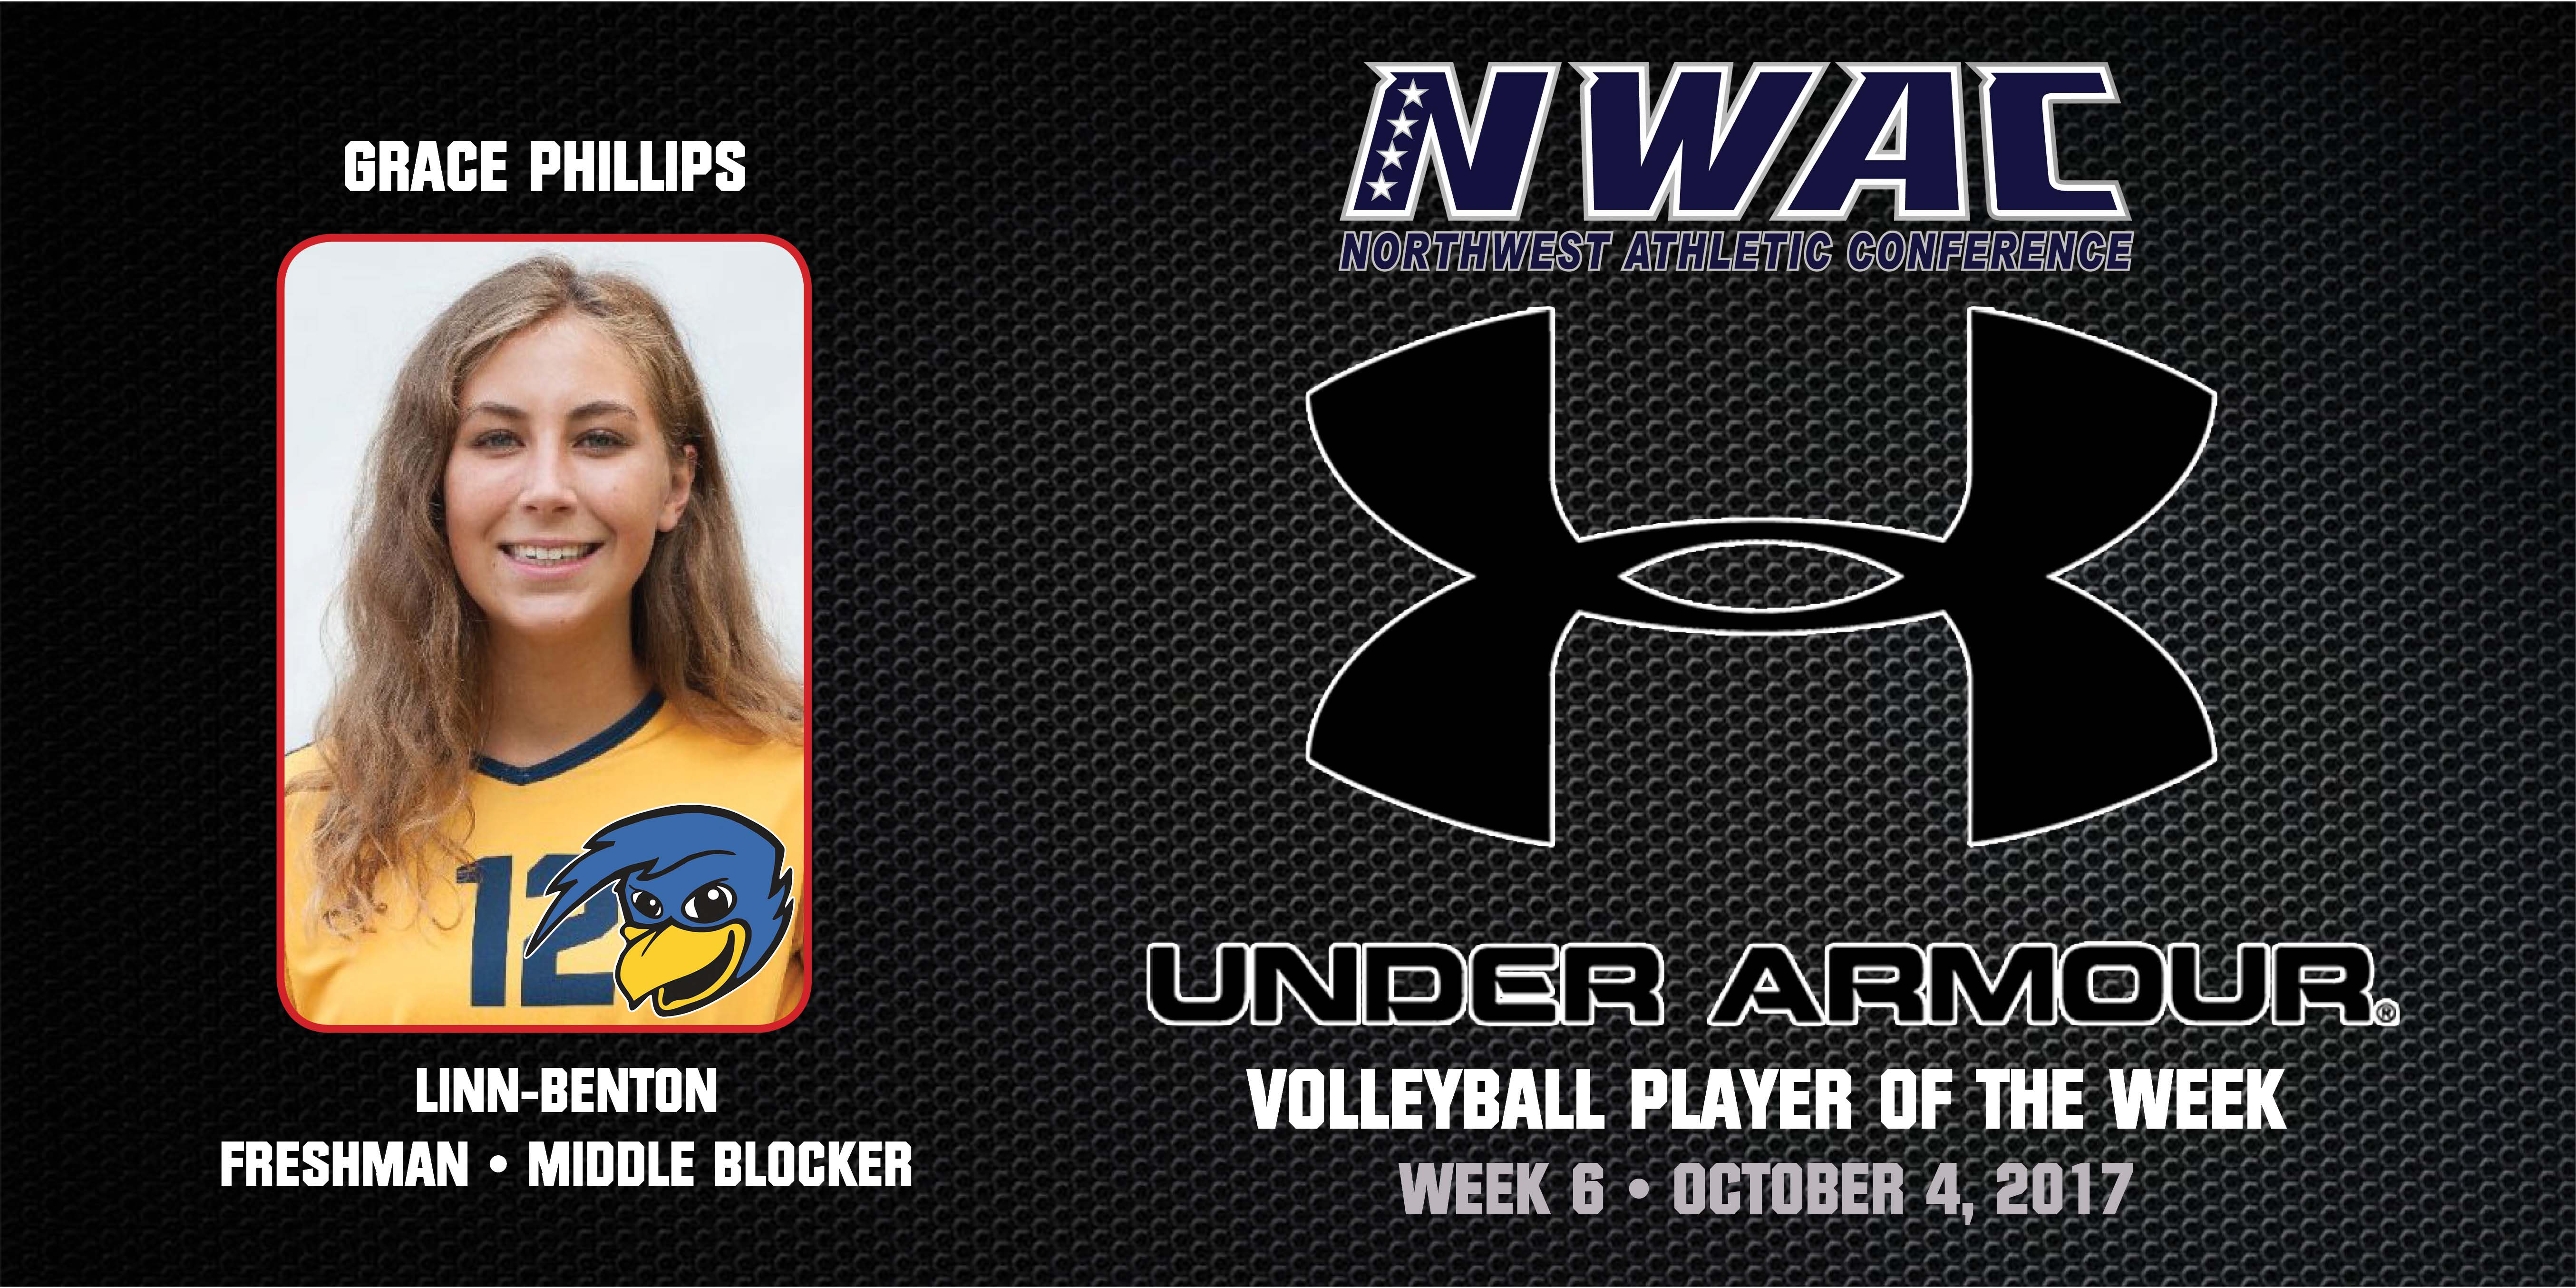 Grace Phillips Under Armour Player of the Week